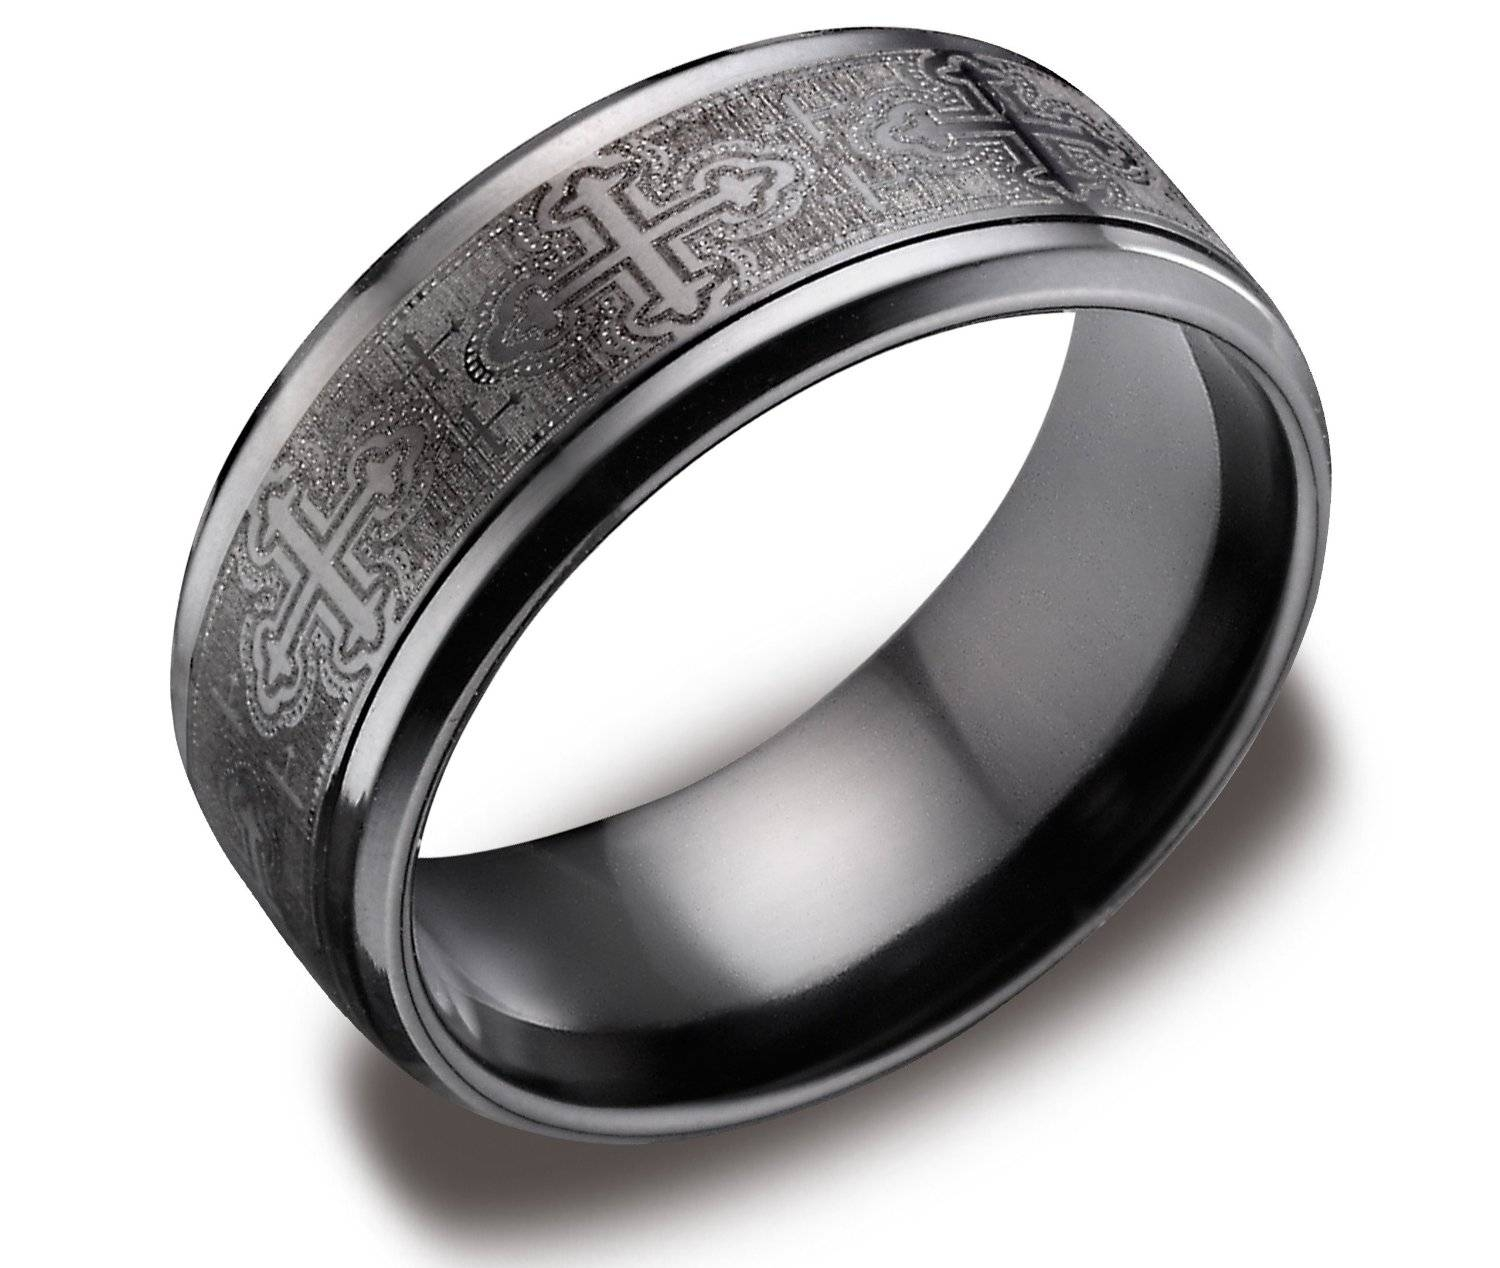 Mens Titanium Wedding Bands Are No Less Appealing Than Gold Regarding Black Titanium Wedding Bands For Men (View 6 of 15)